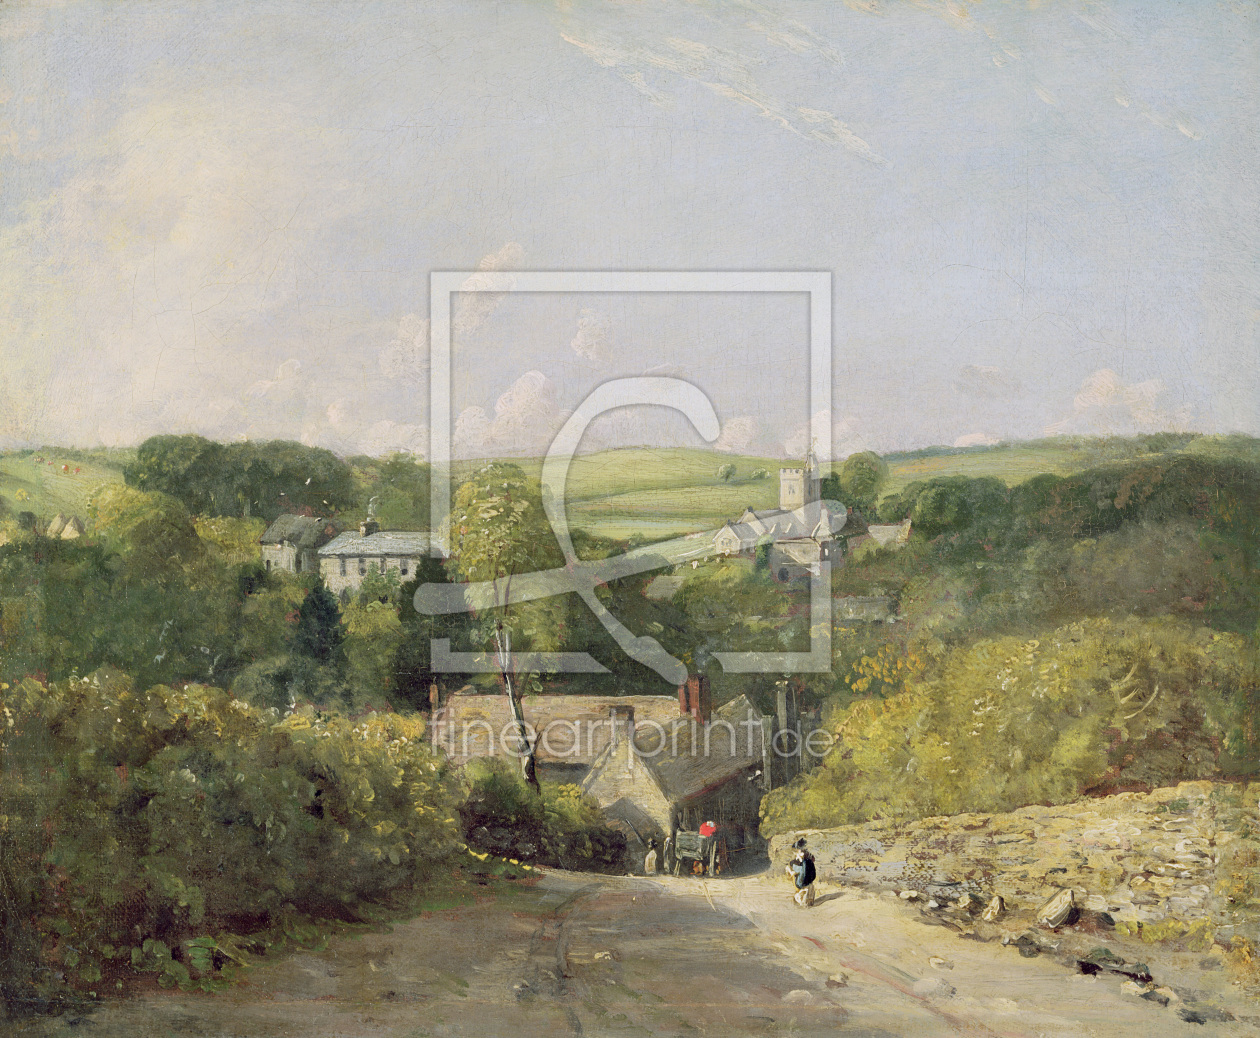 Bild-Nr.: 31000222 A View of Osmington Village with the Church and Vicarage, 1816 erstellt von Constable, John